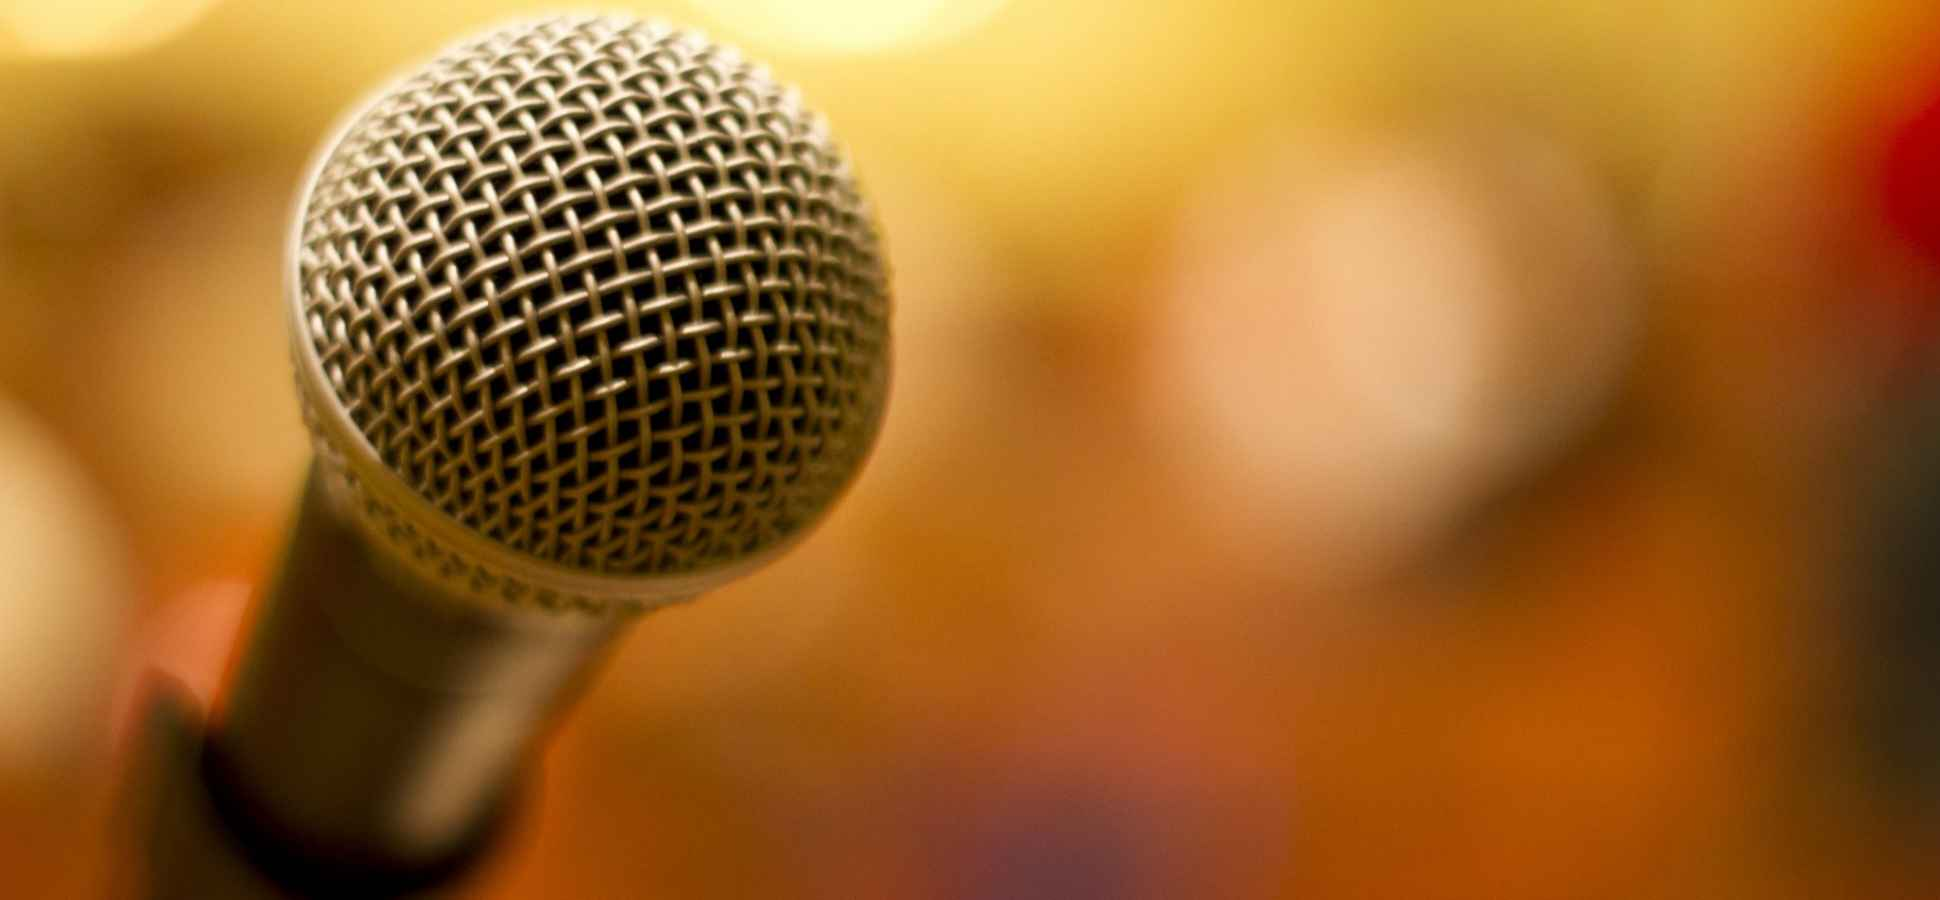 2 Common Words You Should Stop Using in Presentations